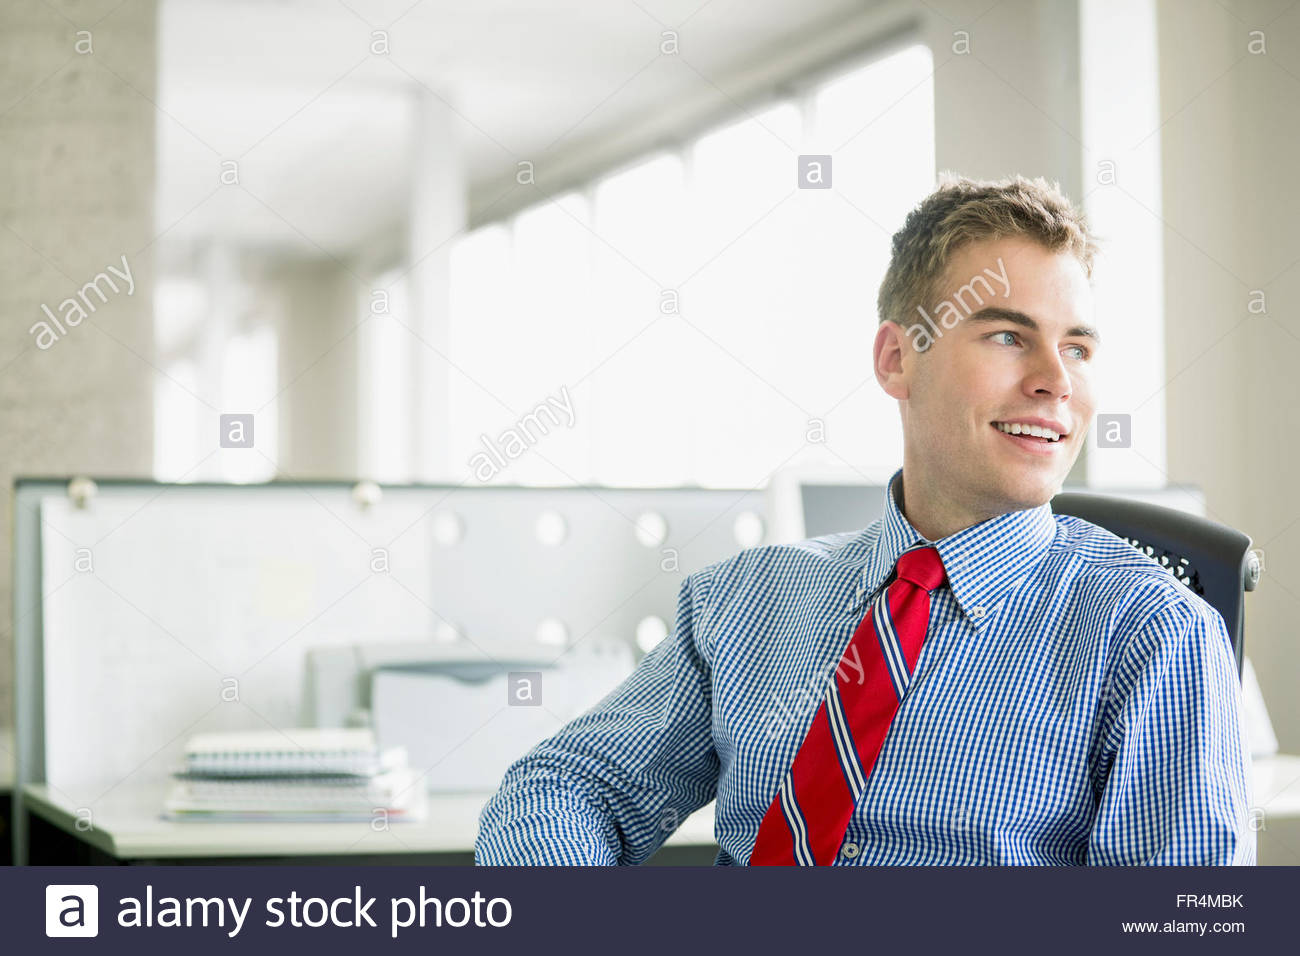 handsome, young adult businessman at office - Stock Image